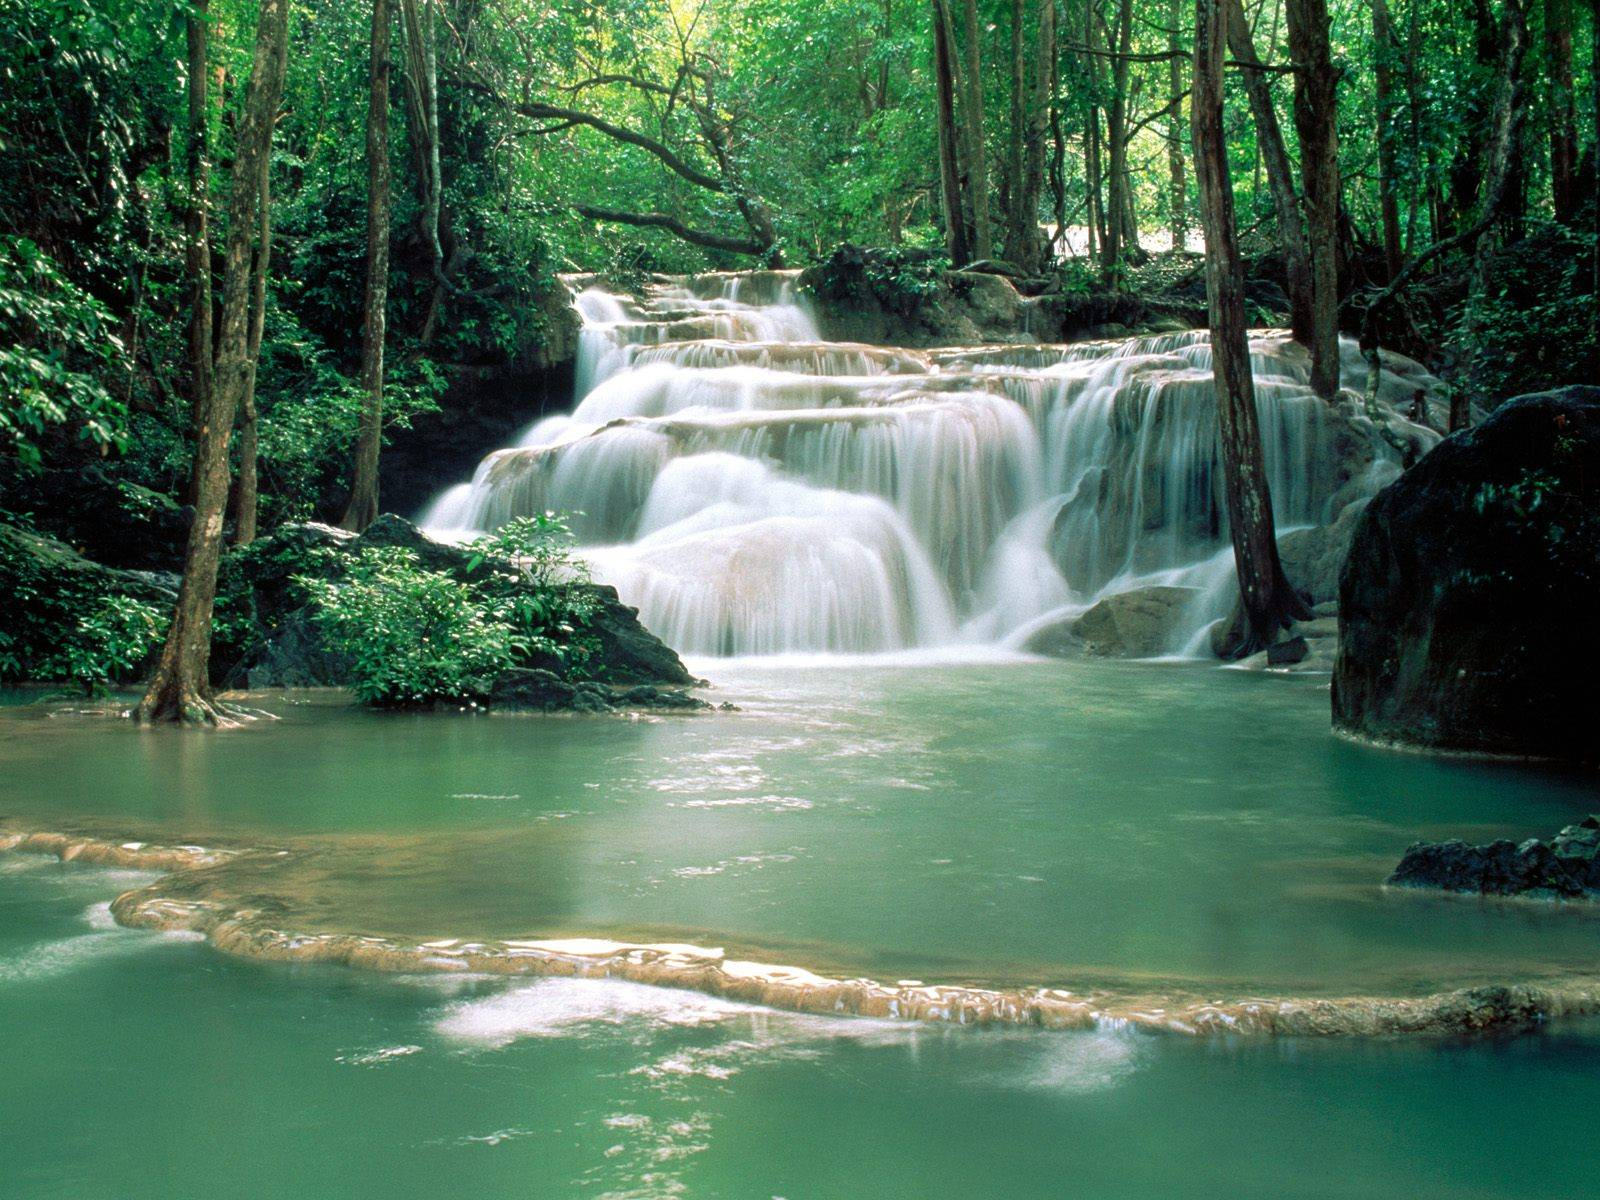 https://i0.wp.com/grandcanyon.free.fr/images/cascade/original/Kao%20Pun%20Temple%20Waterfalls,%20Kanchanaburi%20Region.jpg